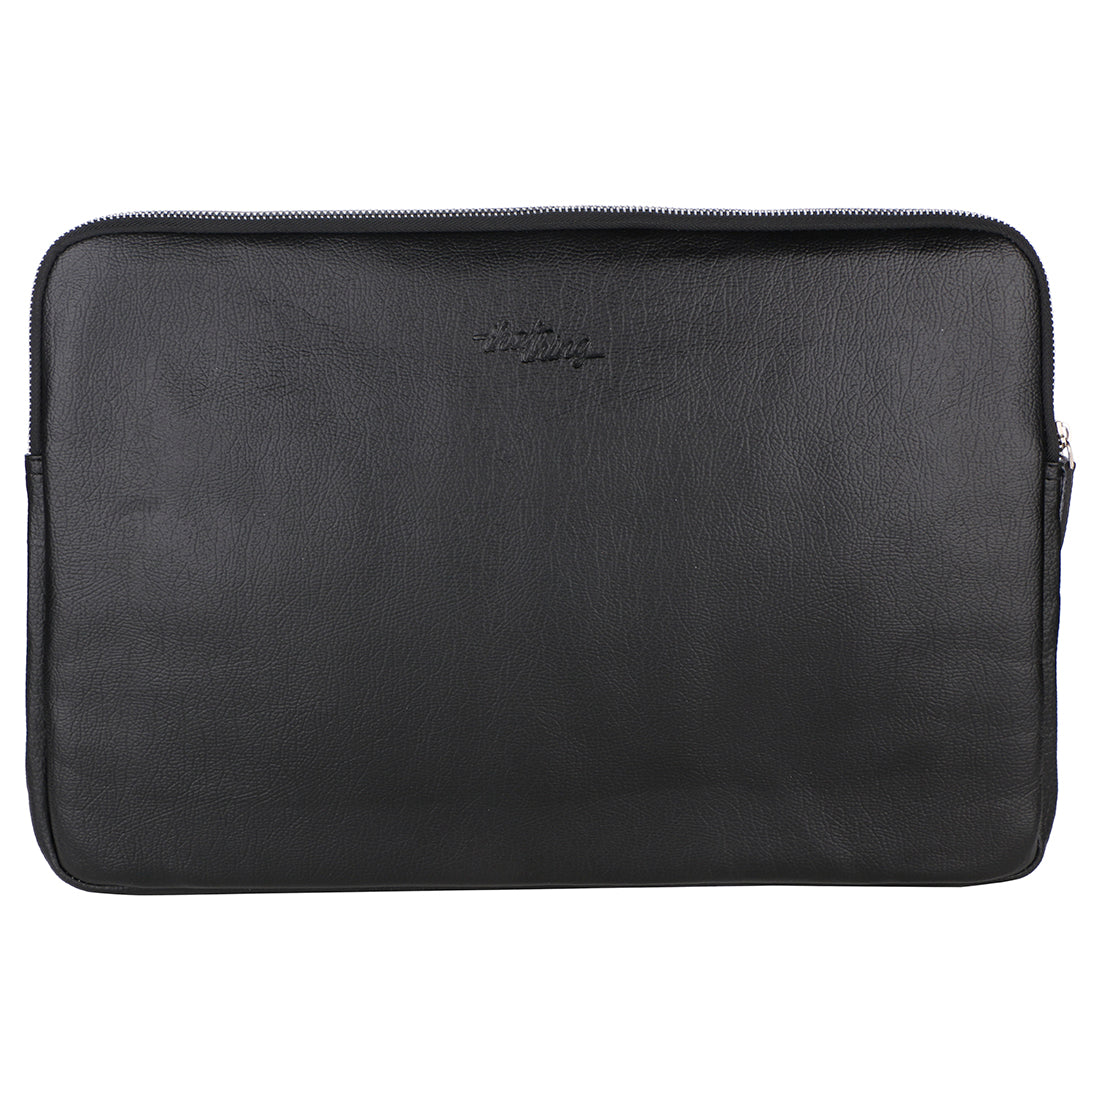 "Awesome 15"" Laptop Sleeve"